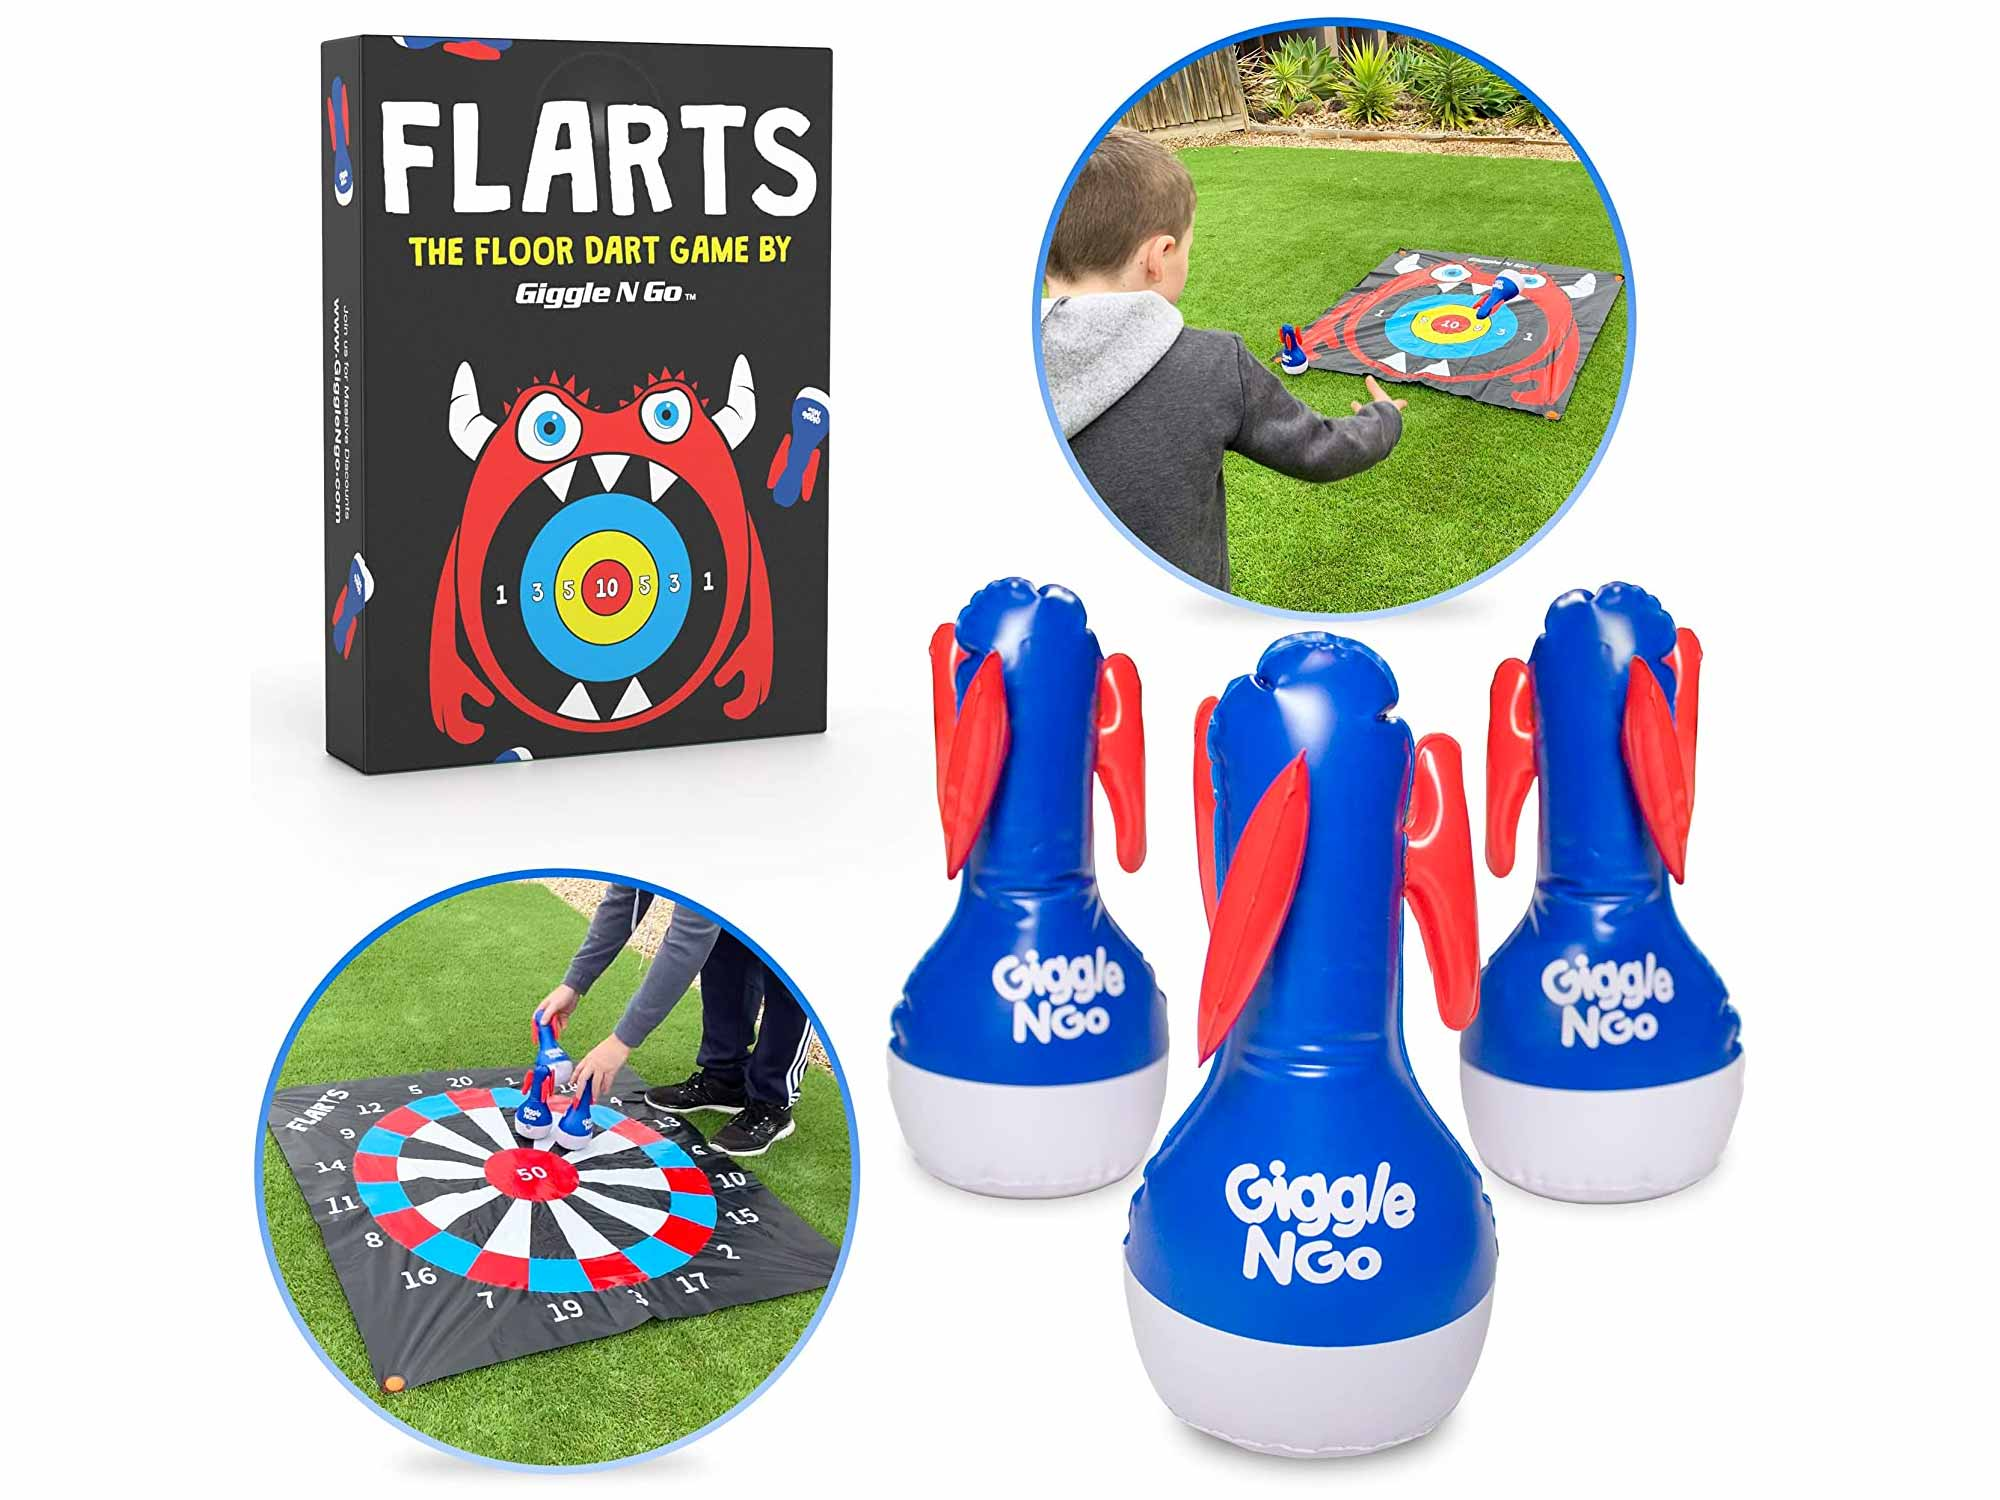 GIGGLE N GO Indoor Games or Outdoor Games for Family